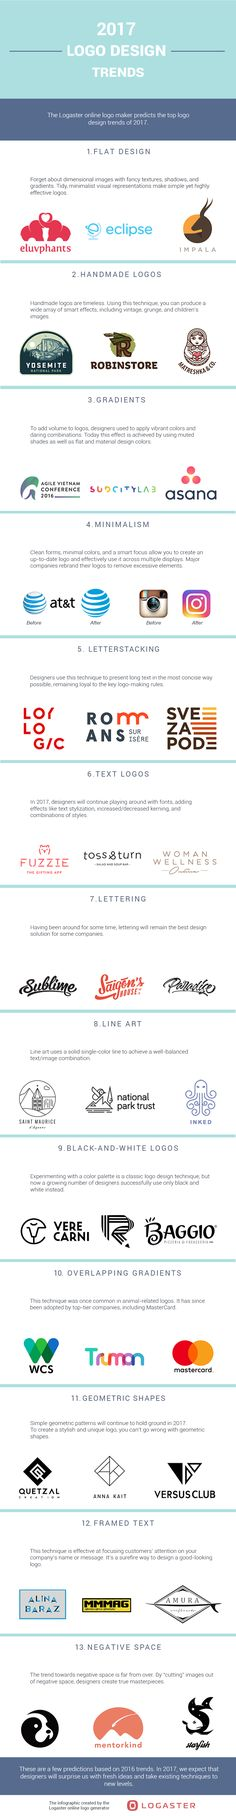 What trends will impact logo design in 2017? Learn what designers need to keep an eye out for.